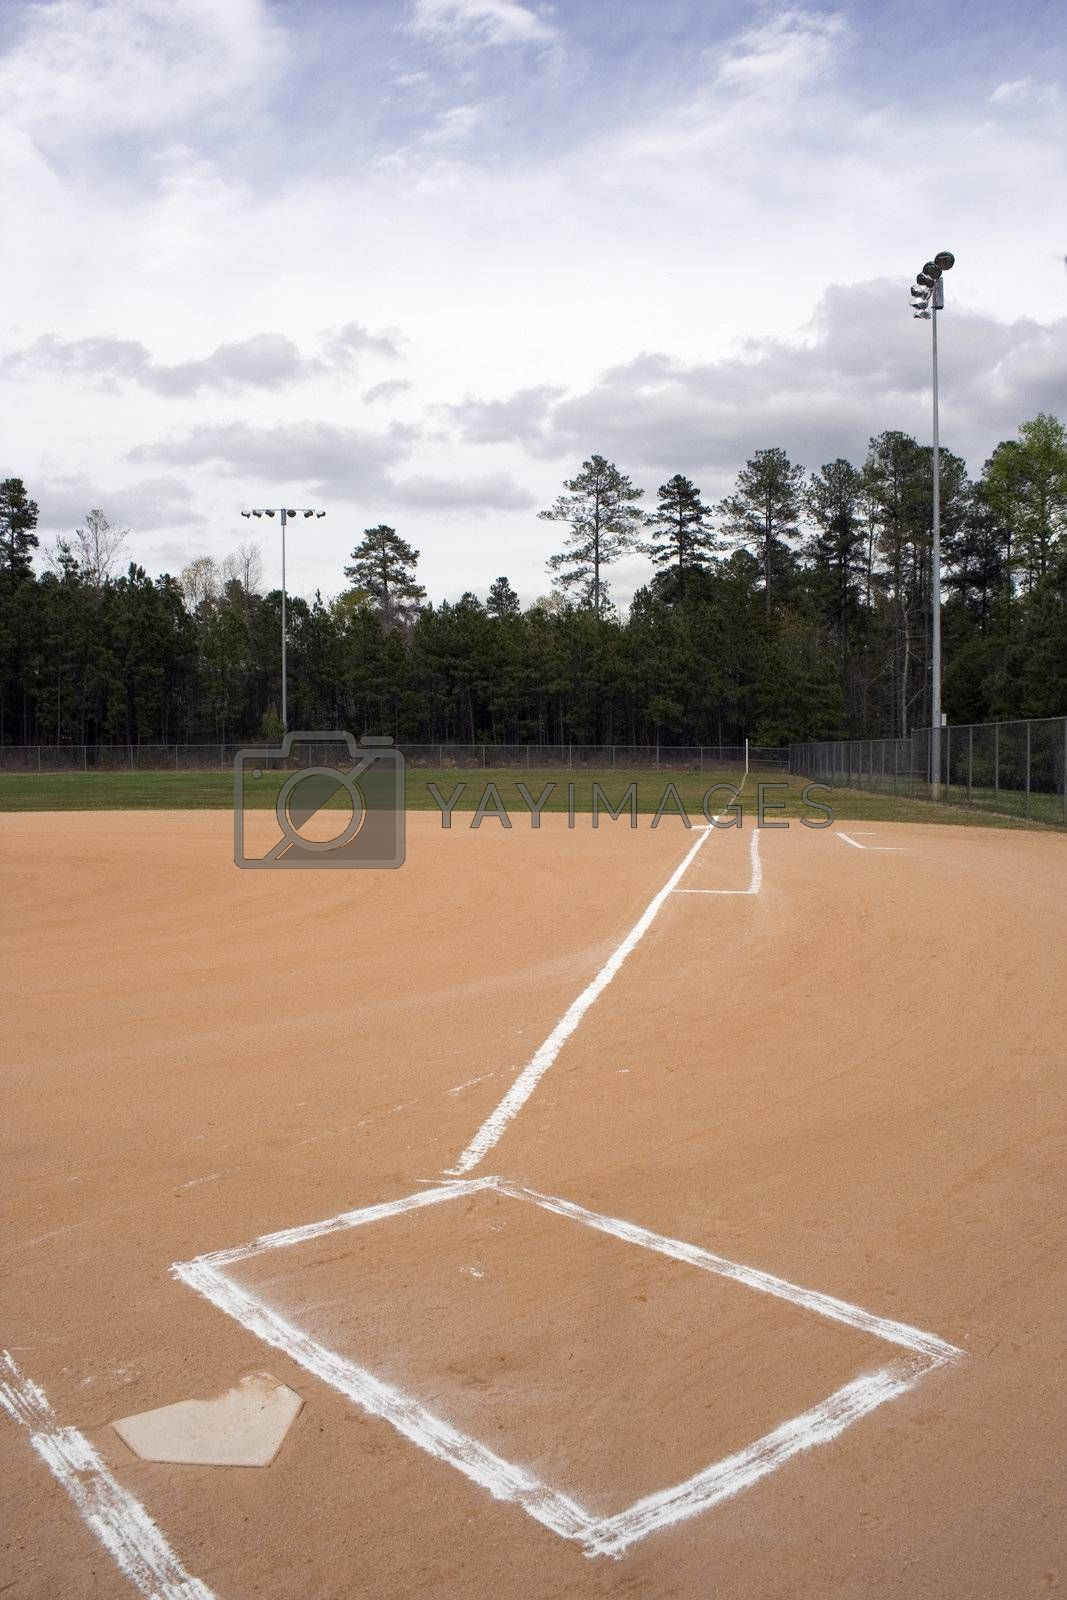 A view down the first base line on a baseball field.